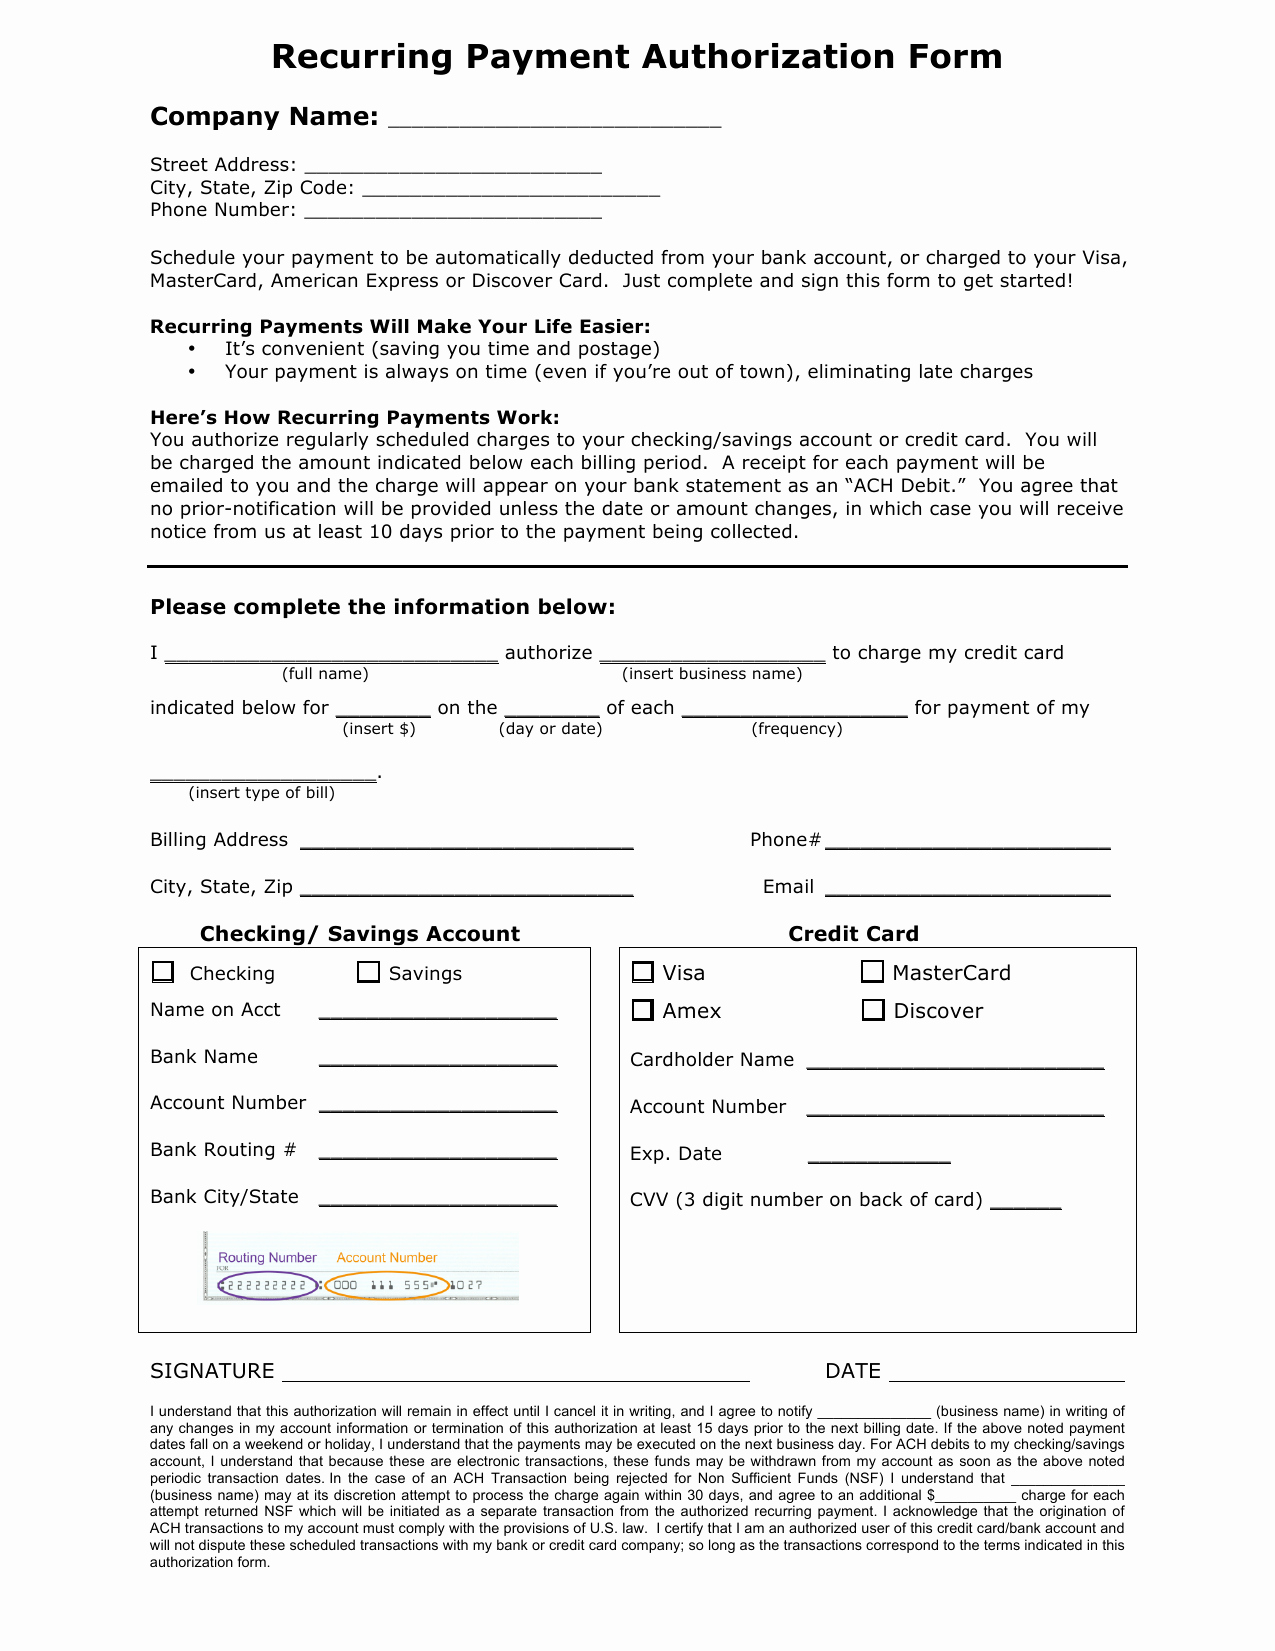 Credit Card Payment Template Best Of Download Recurring Payment Authorization form Template